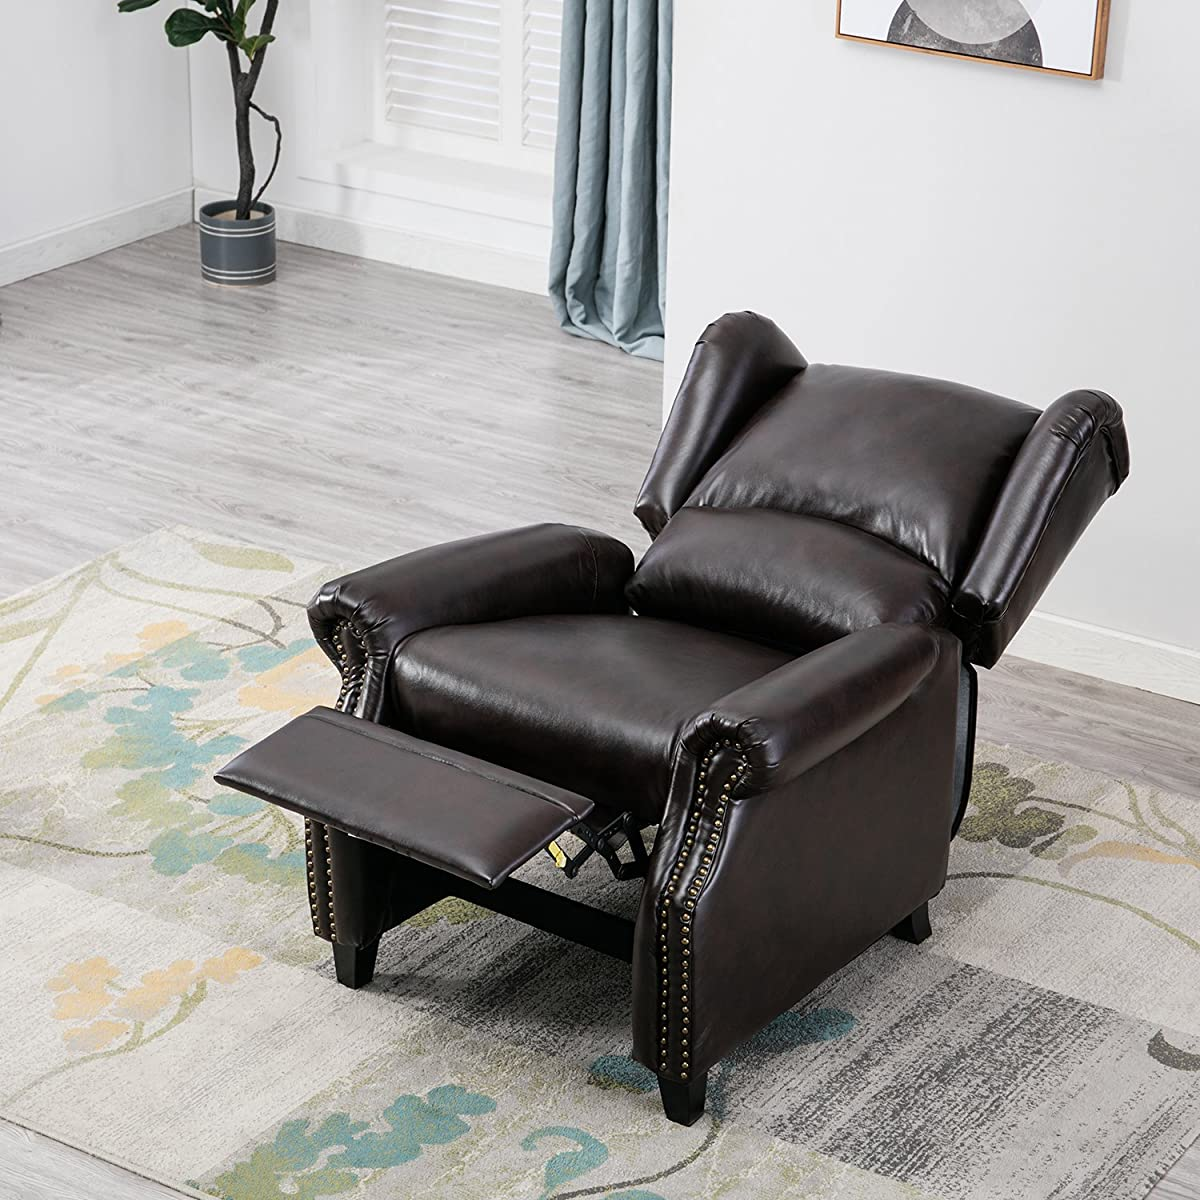 BONZY Traditional Wingback Pushback Recliner Chair Solid Wood Legs Manual Recliners - Dark Brown